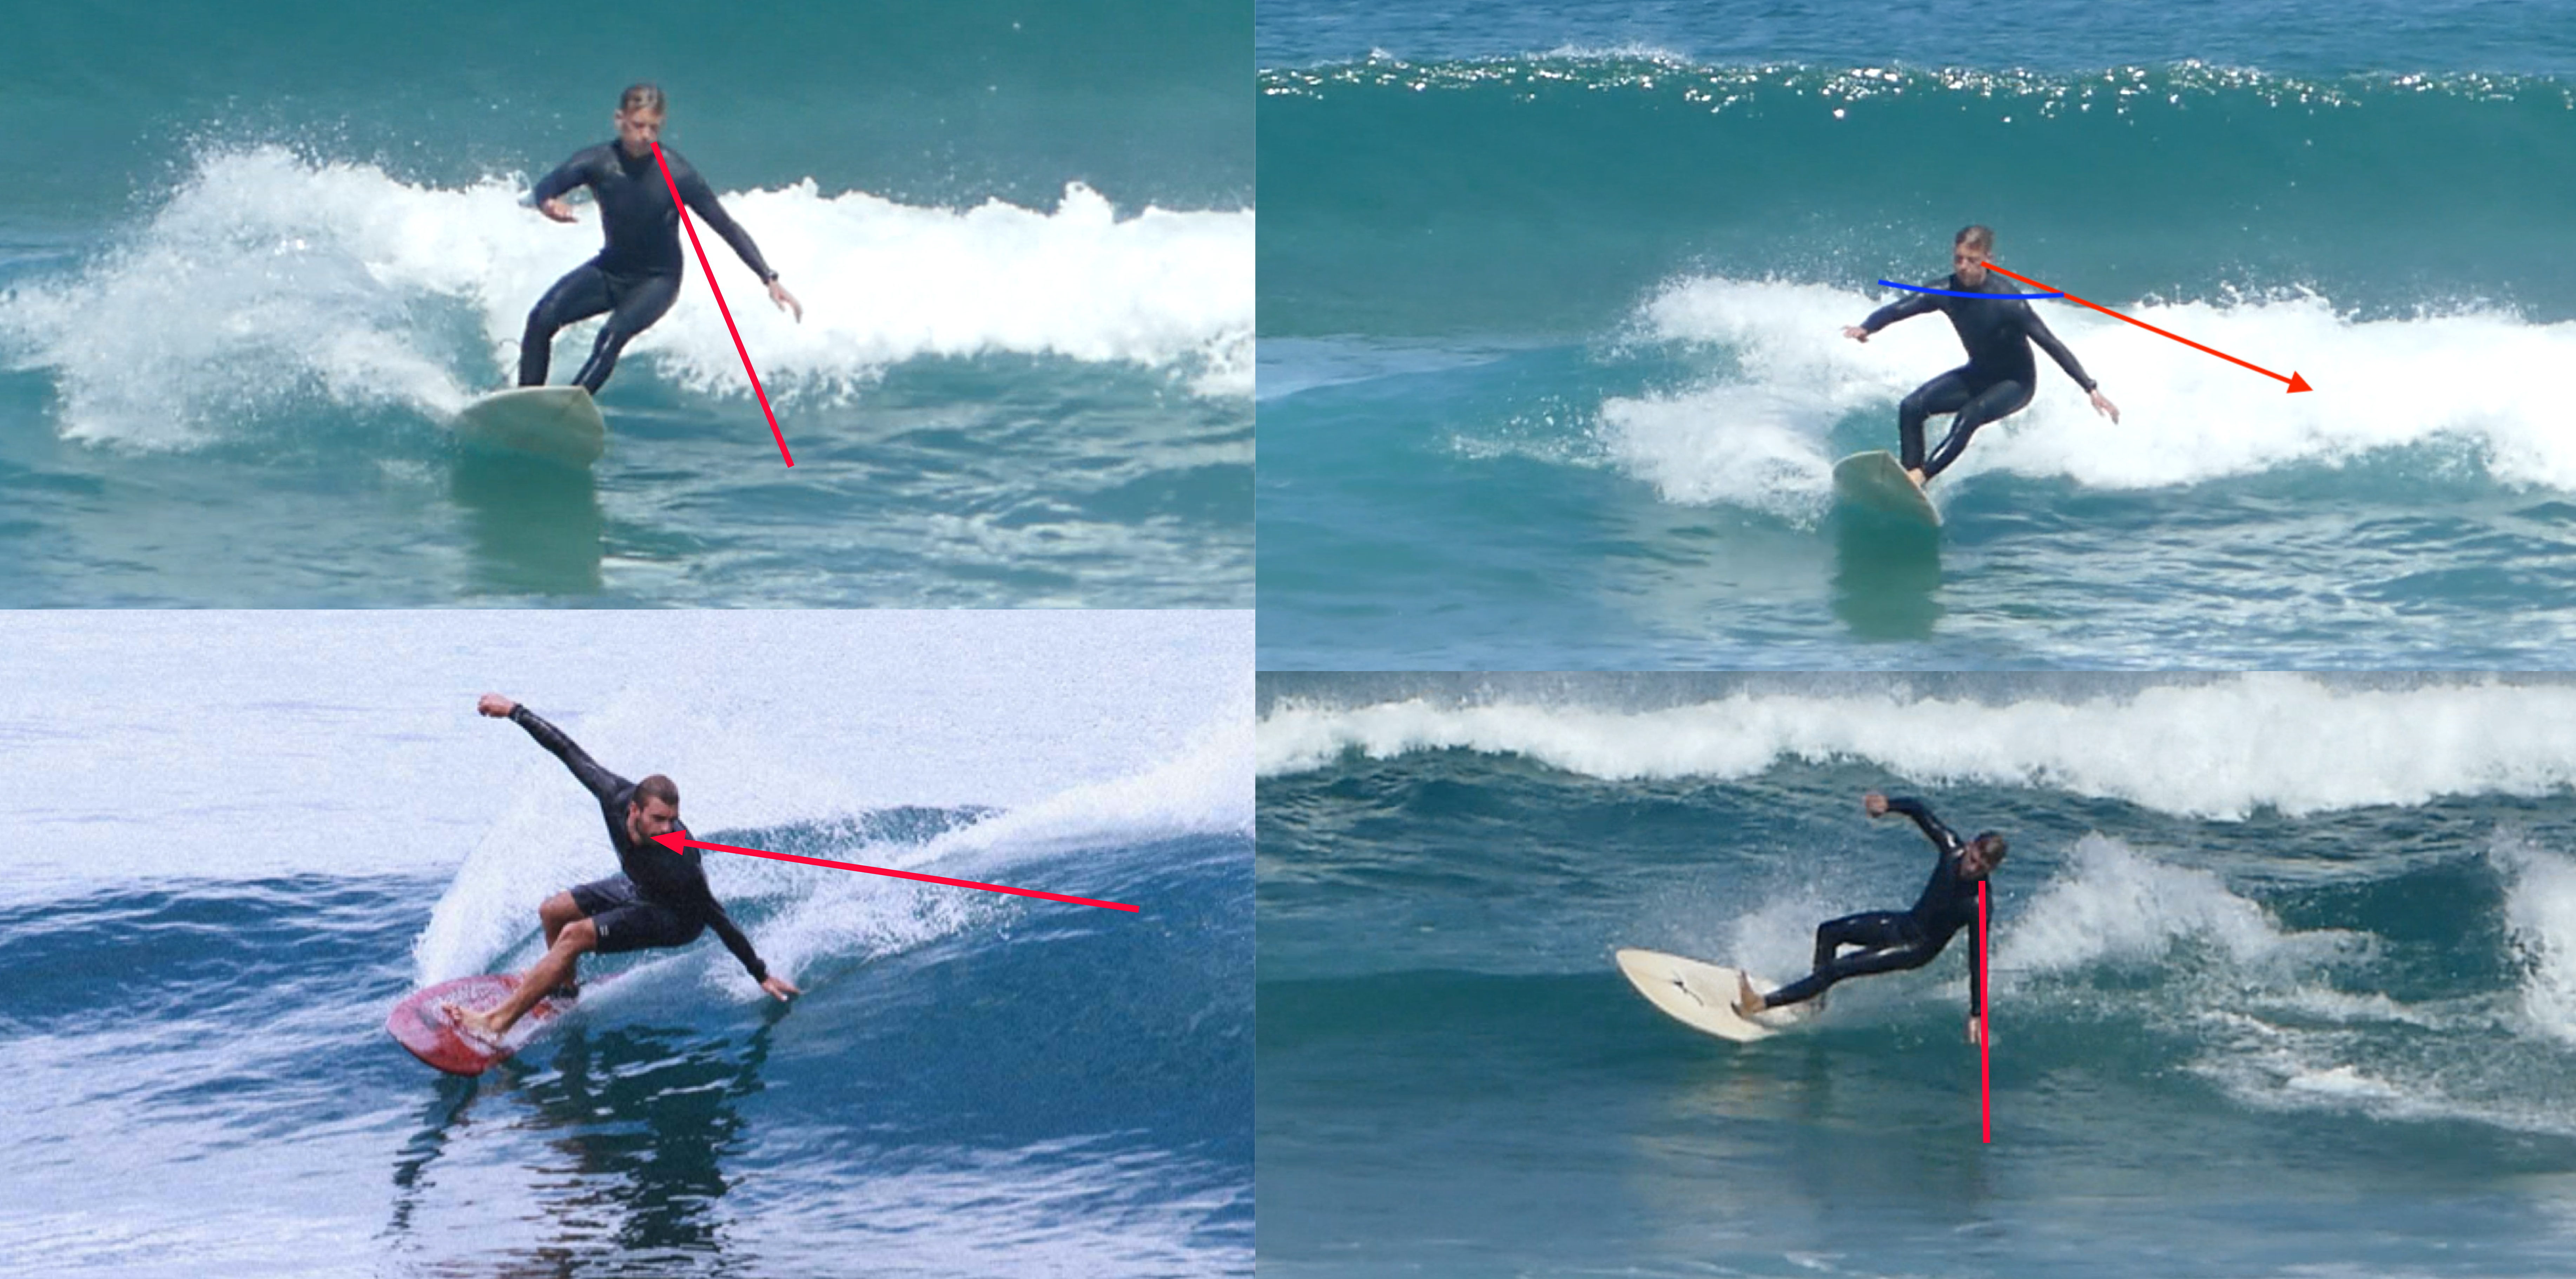 surf coaching how to do a round house cutback Justin West Coaching